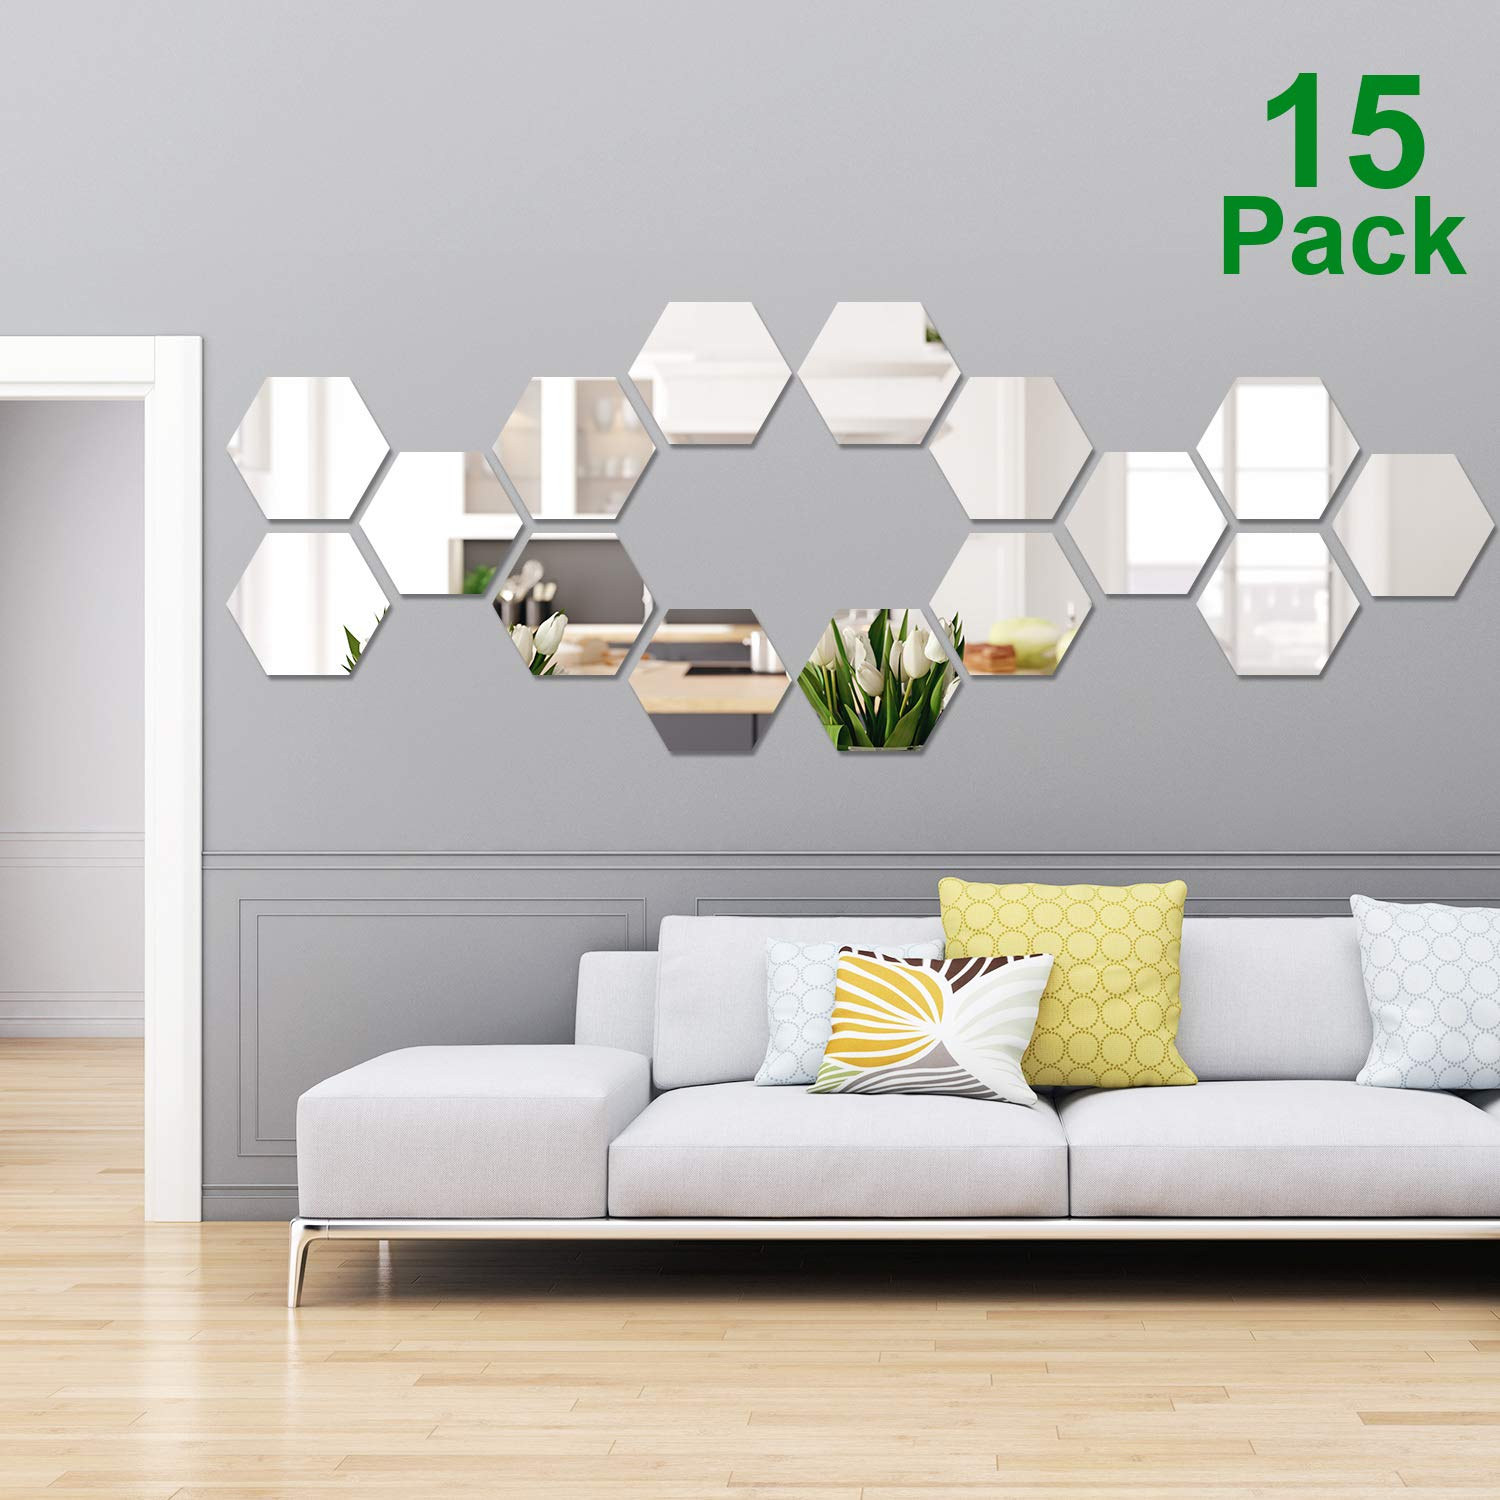 15 Pieces Removable Acrylic Mirror Setting Wall Sticker Decal for Home Living Room Bedroom Decor (Style 4, 15 Pieces) by Shappy (Image #1)